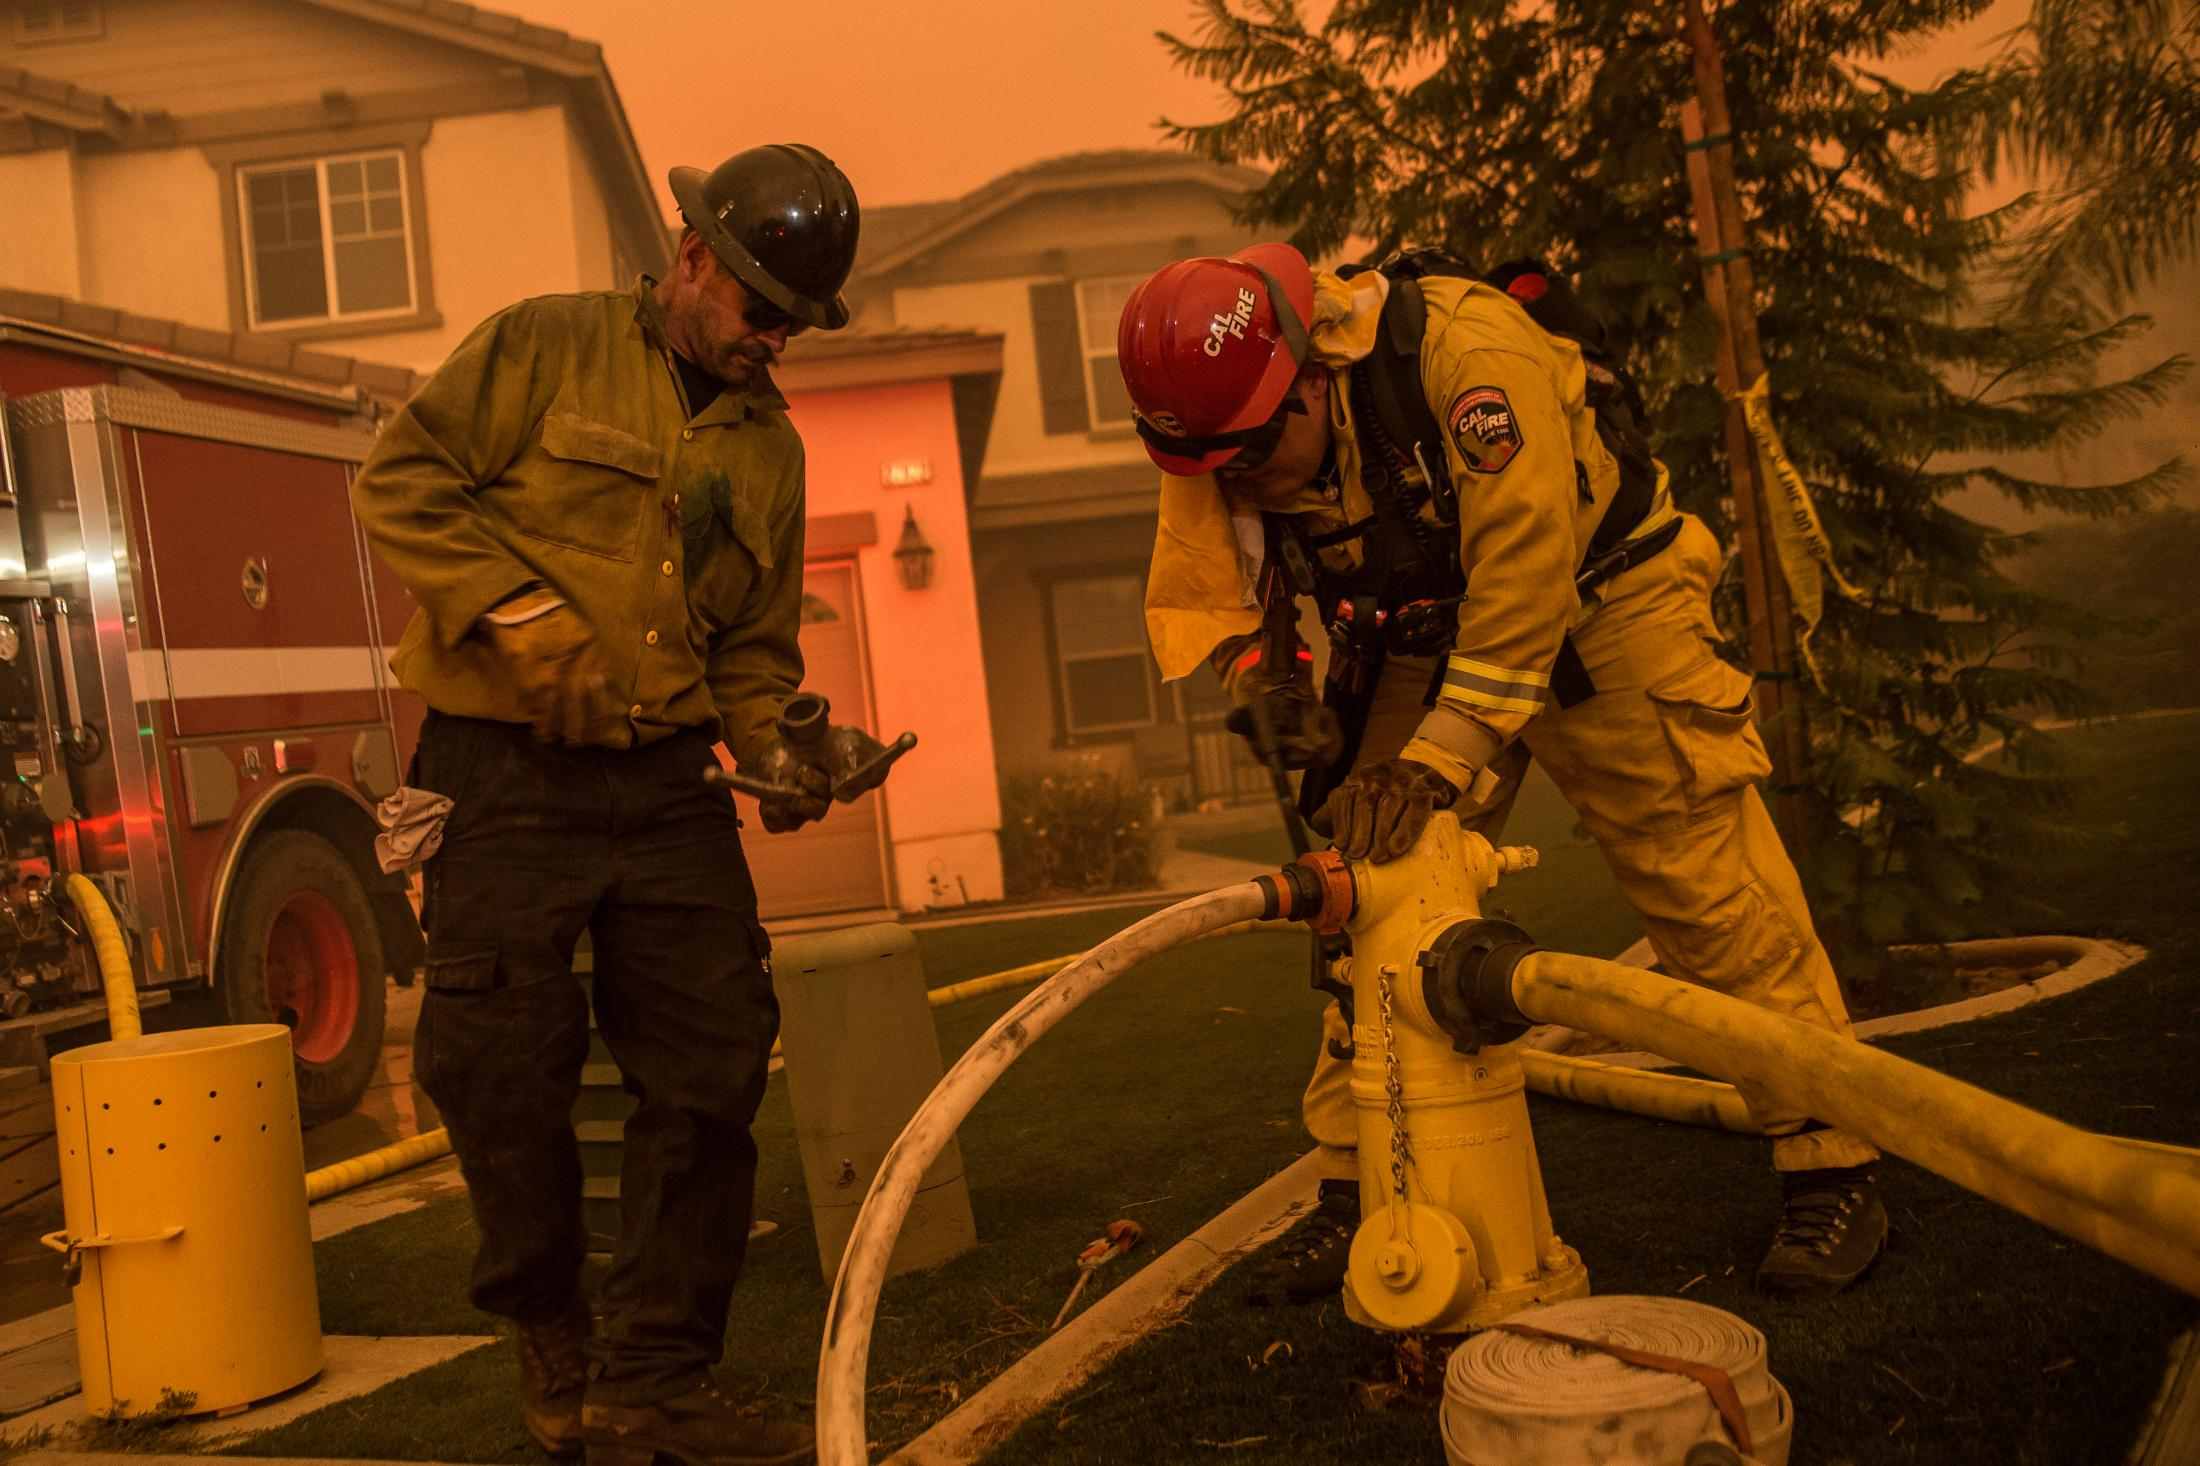 Two firefighters from different departments from Texas and California work together to attach hoses to a water source. The state of California faced its worst fire season in history. One of the worst fires located in Los Angeles and Ventura County named the Woolsey Fire. This wildfire burned; 96,949 acres and destroyed 1,643 structures. Three people reported to have died in the blaze, and over a quarter-million evacuated.